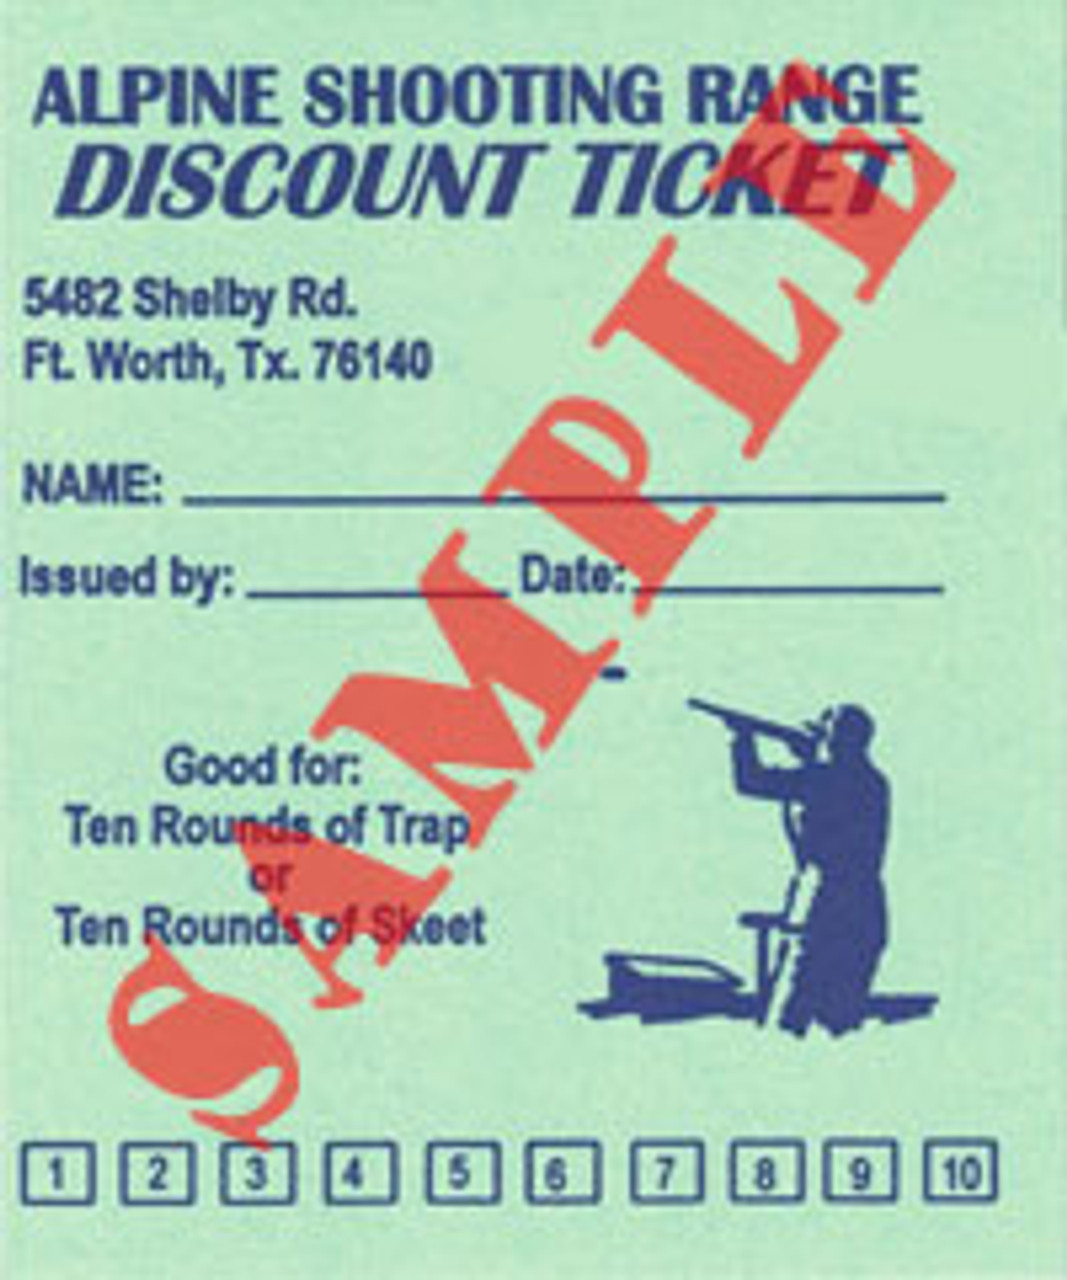 Discount Card for 10 rounds of Skeet or Trap